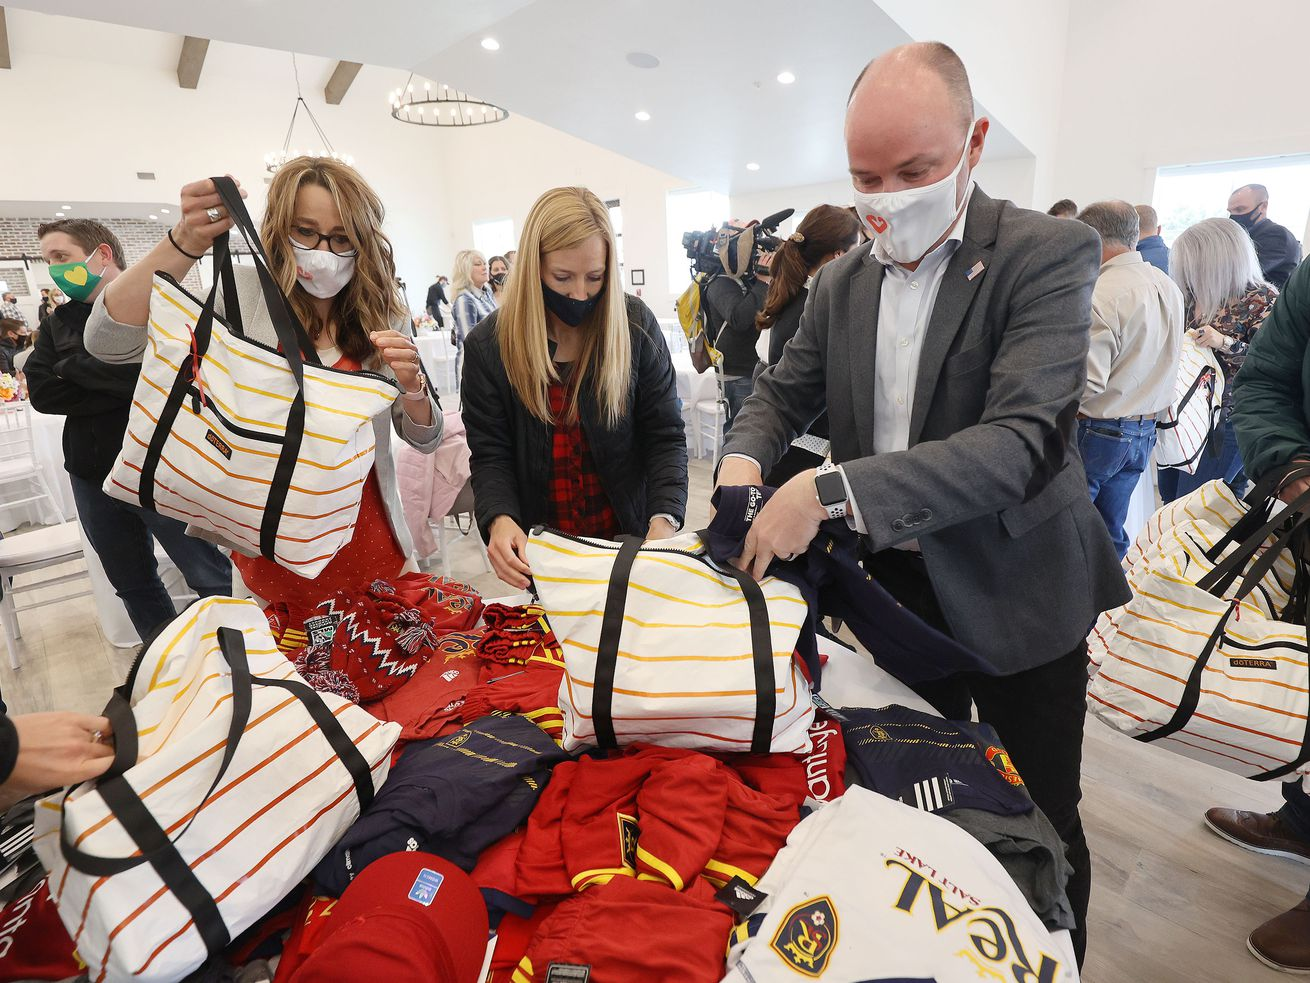 Utah first lady Abby Cox, left, her sister Lisle Dewey, center, and husband Gov. Spencer Cox help put together 1,500 thank-you kits for Utah's foster and kinship families at Bridle Up Hope in Alpine on Tuesday, April 27, 2021. During the service project, Abby Cox announced her new statewide initiative called Show Up Utah, a multifaceted endeavor aimed at promoting empathy in the state through service.